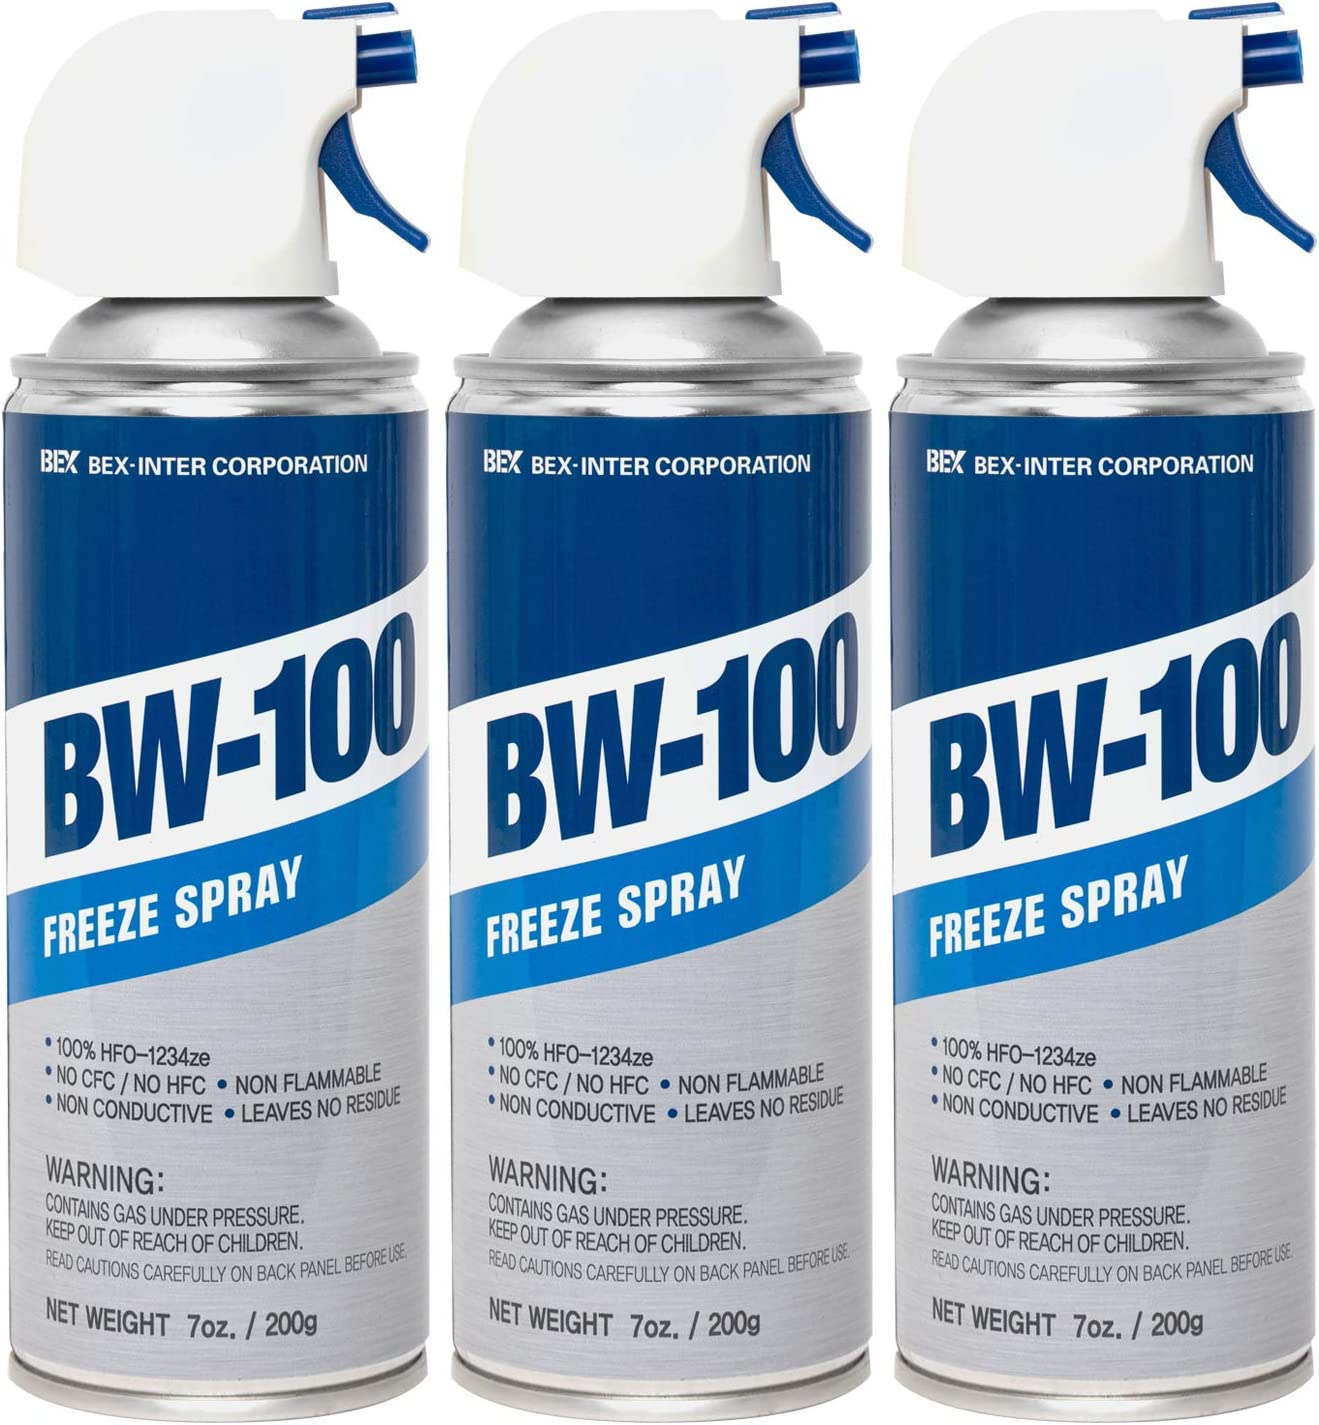 BW-100 Freeze Spray - Diagnostic Cooling Spray - Safe for Semiconductors, Capacitors, PCBs and More - Non-Flammable Construction | 7 oz/200g | Pack of 3